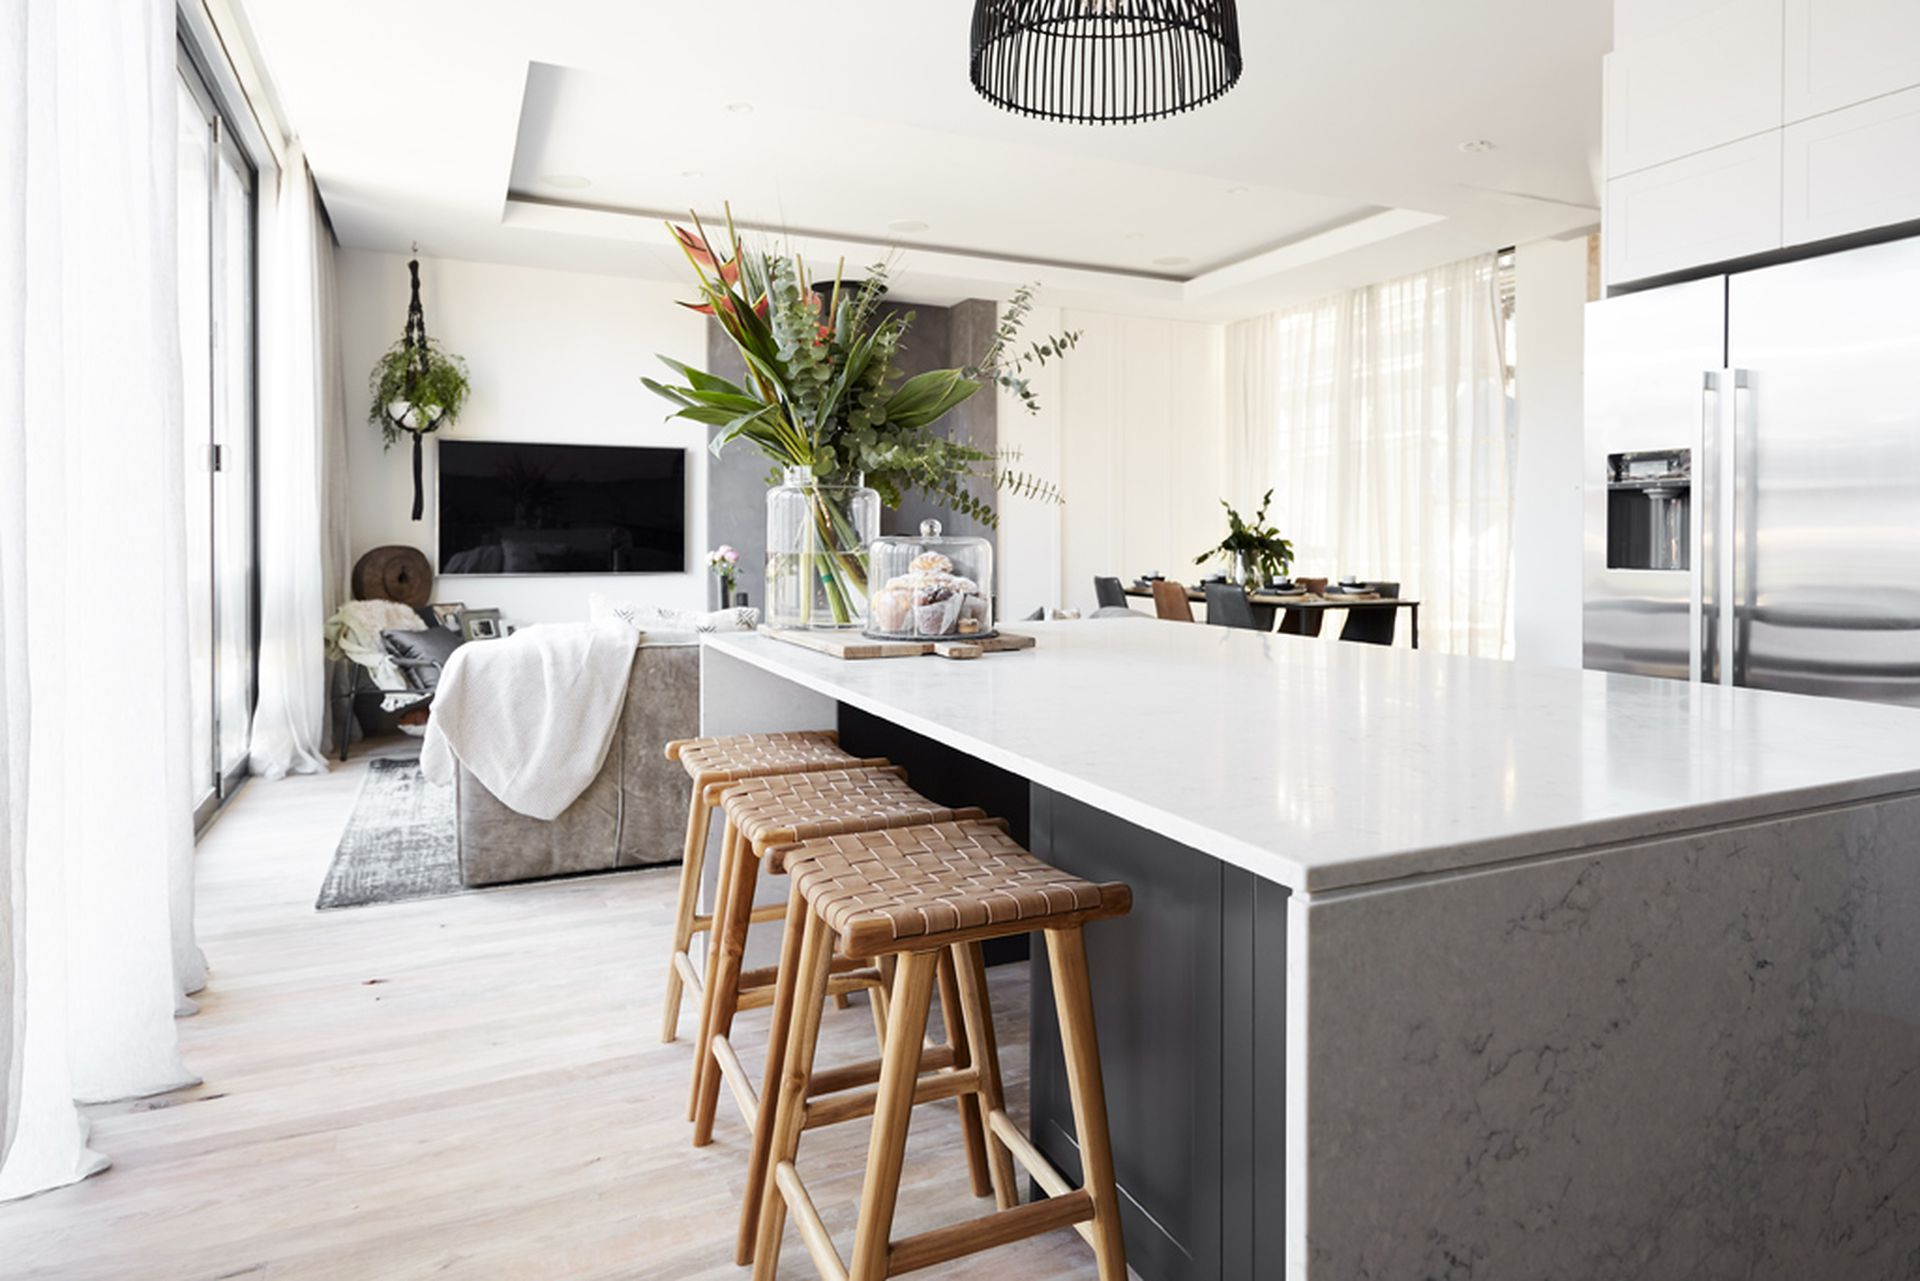 Kitchen gallery JE The Block Extras Season 13, Exclusive Content